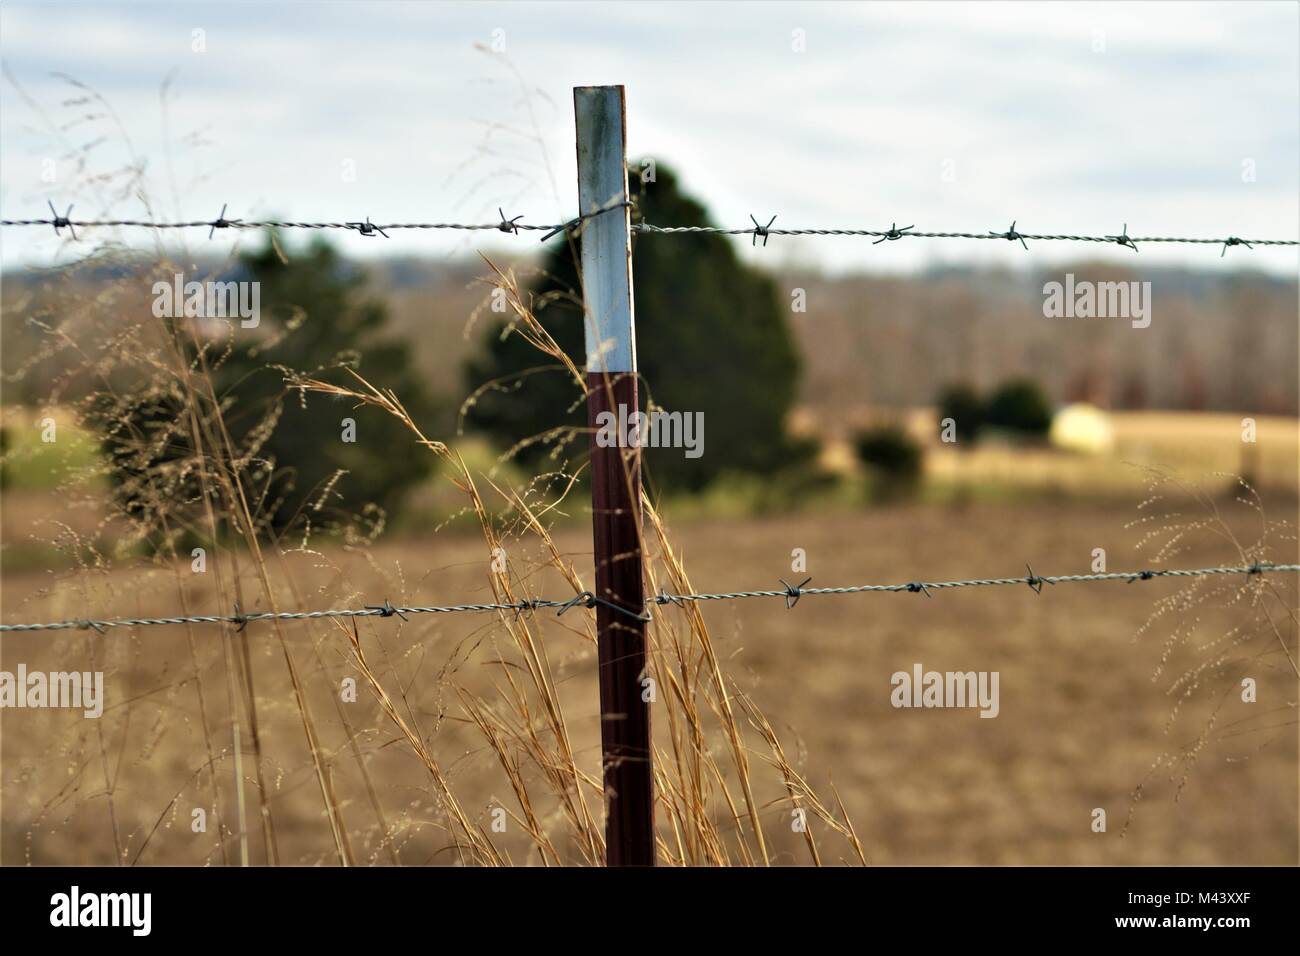 Barbed wire fence on a countryside - Stock Image